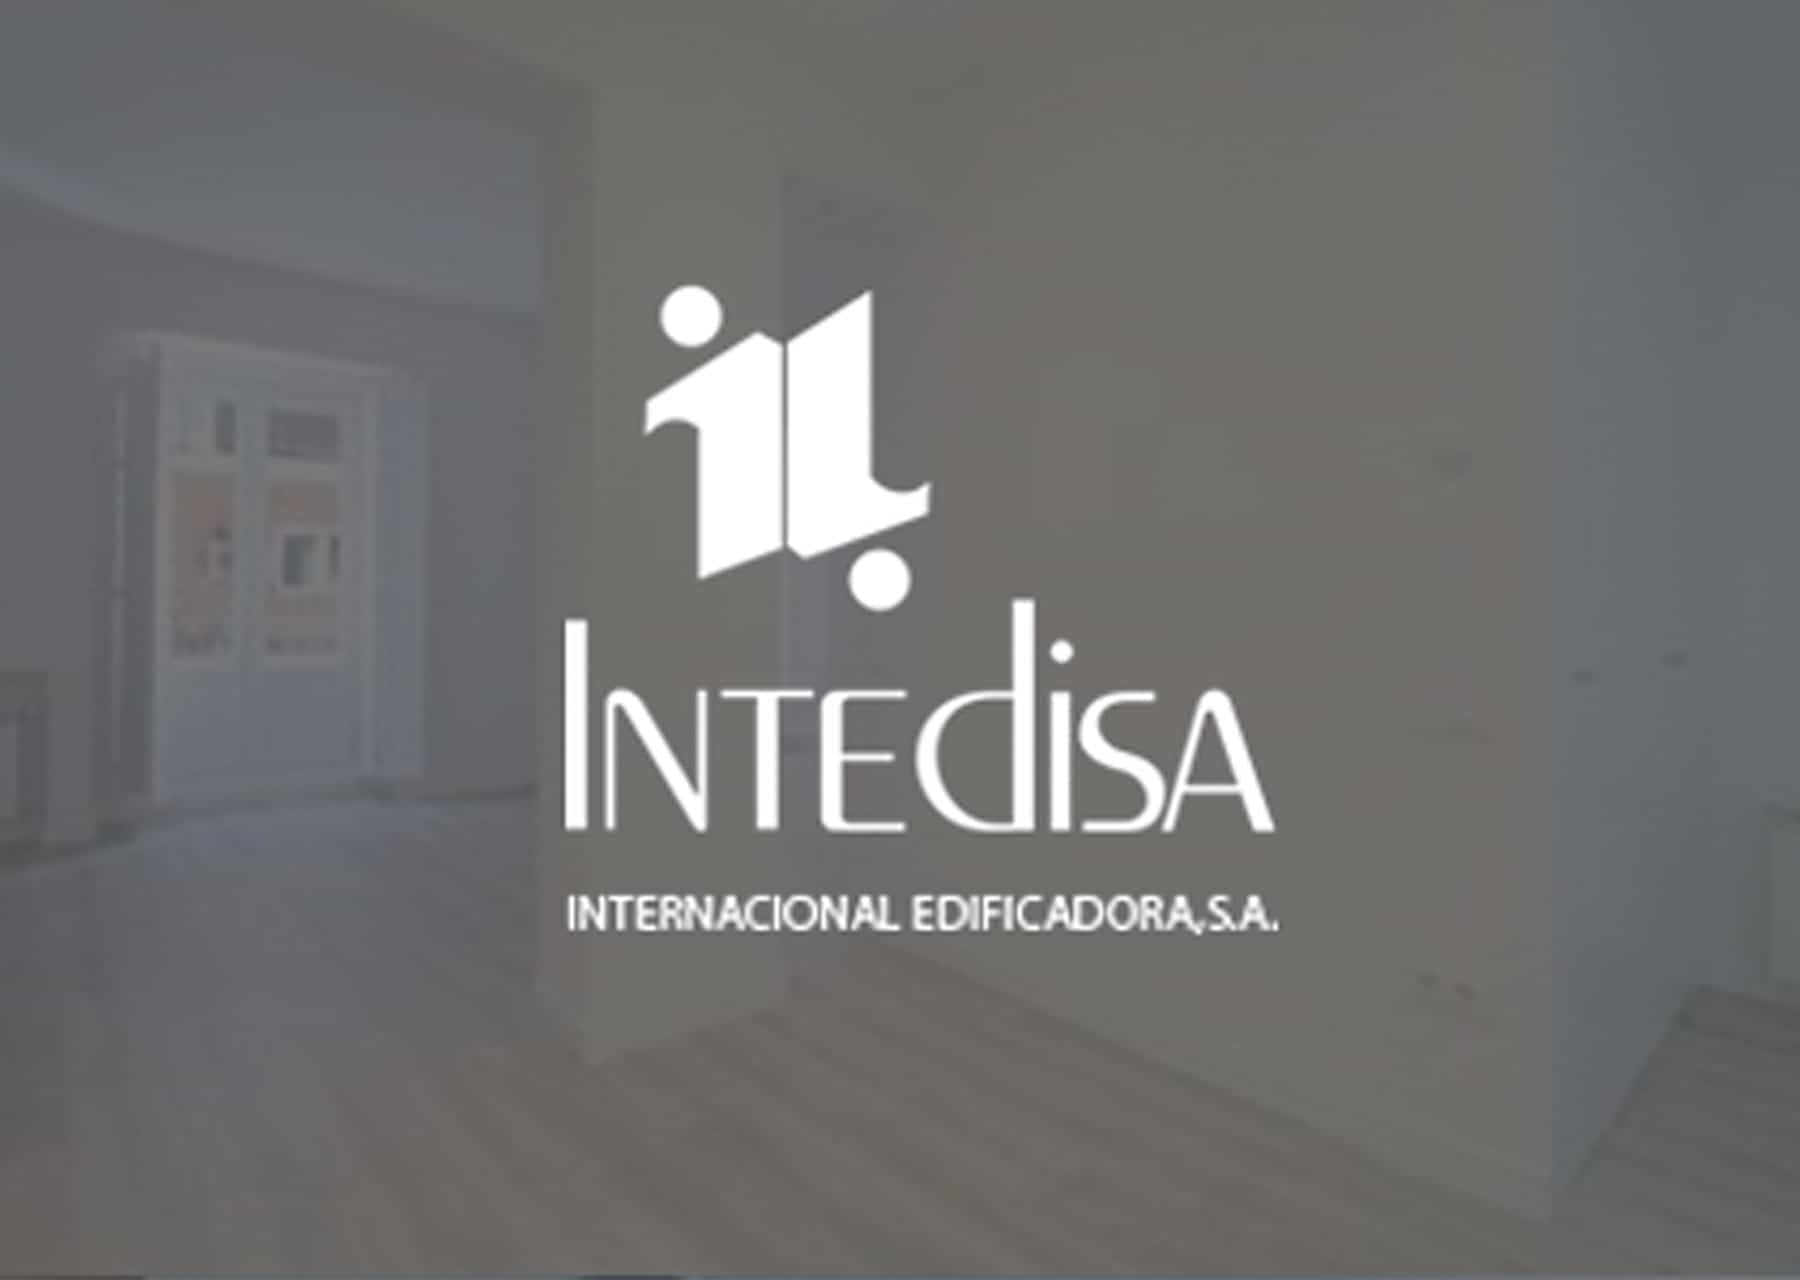 INTEDISA cliente dvproject